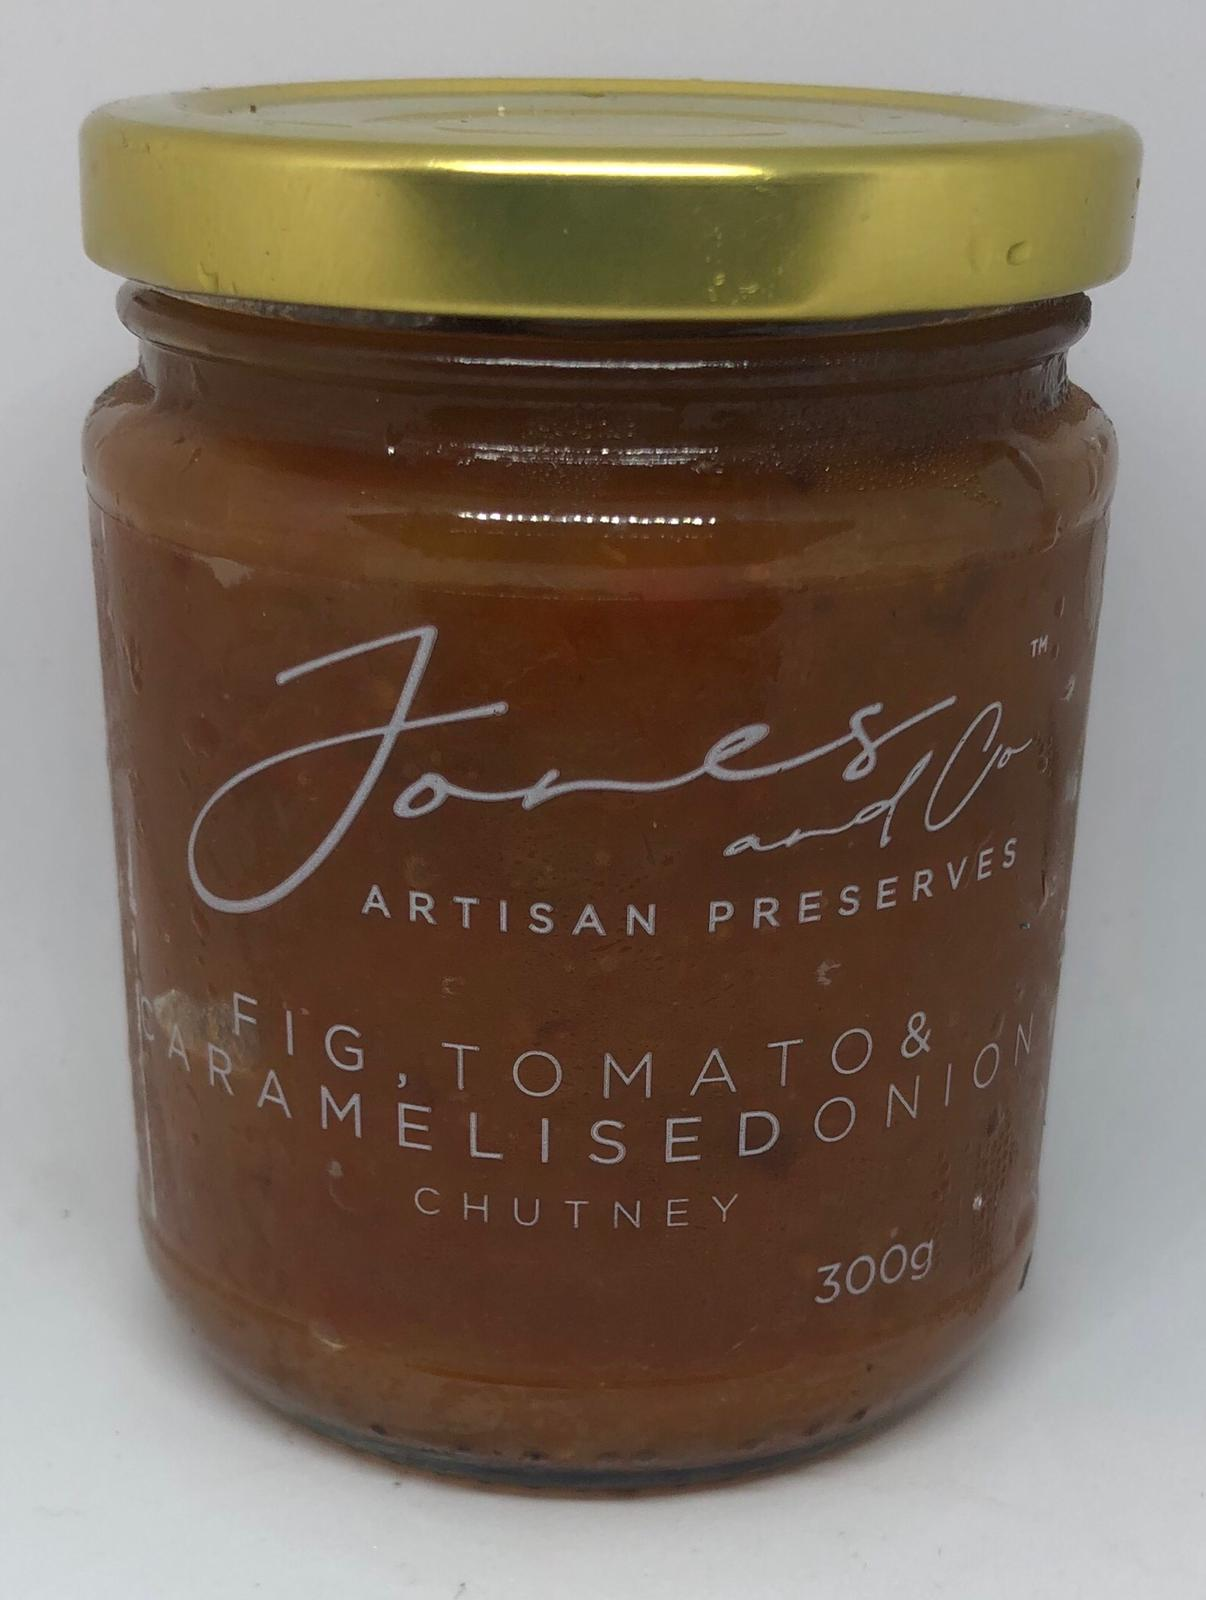 Jones & Co Preserves and Sauces